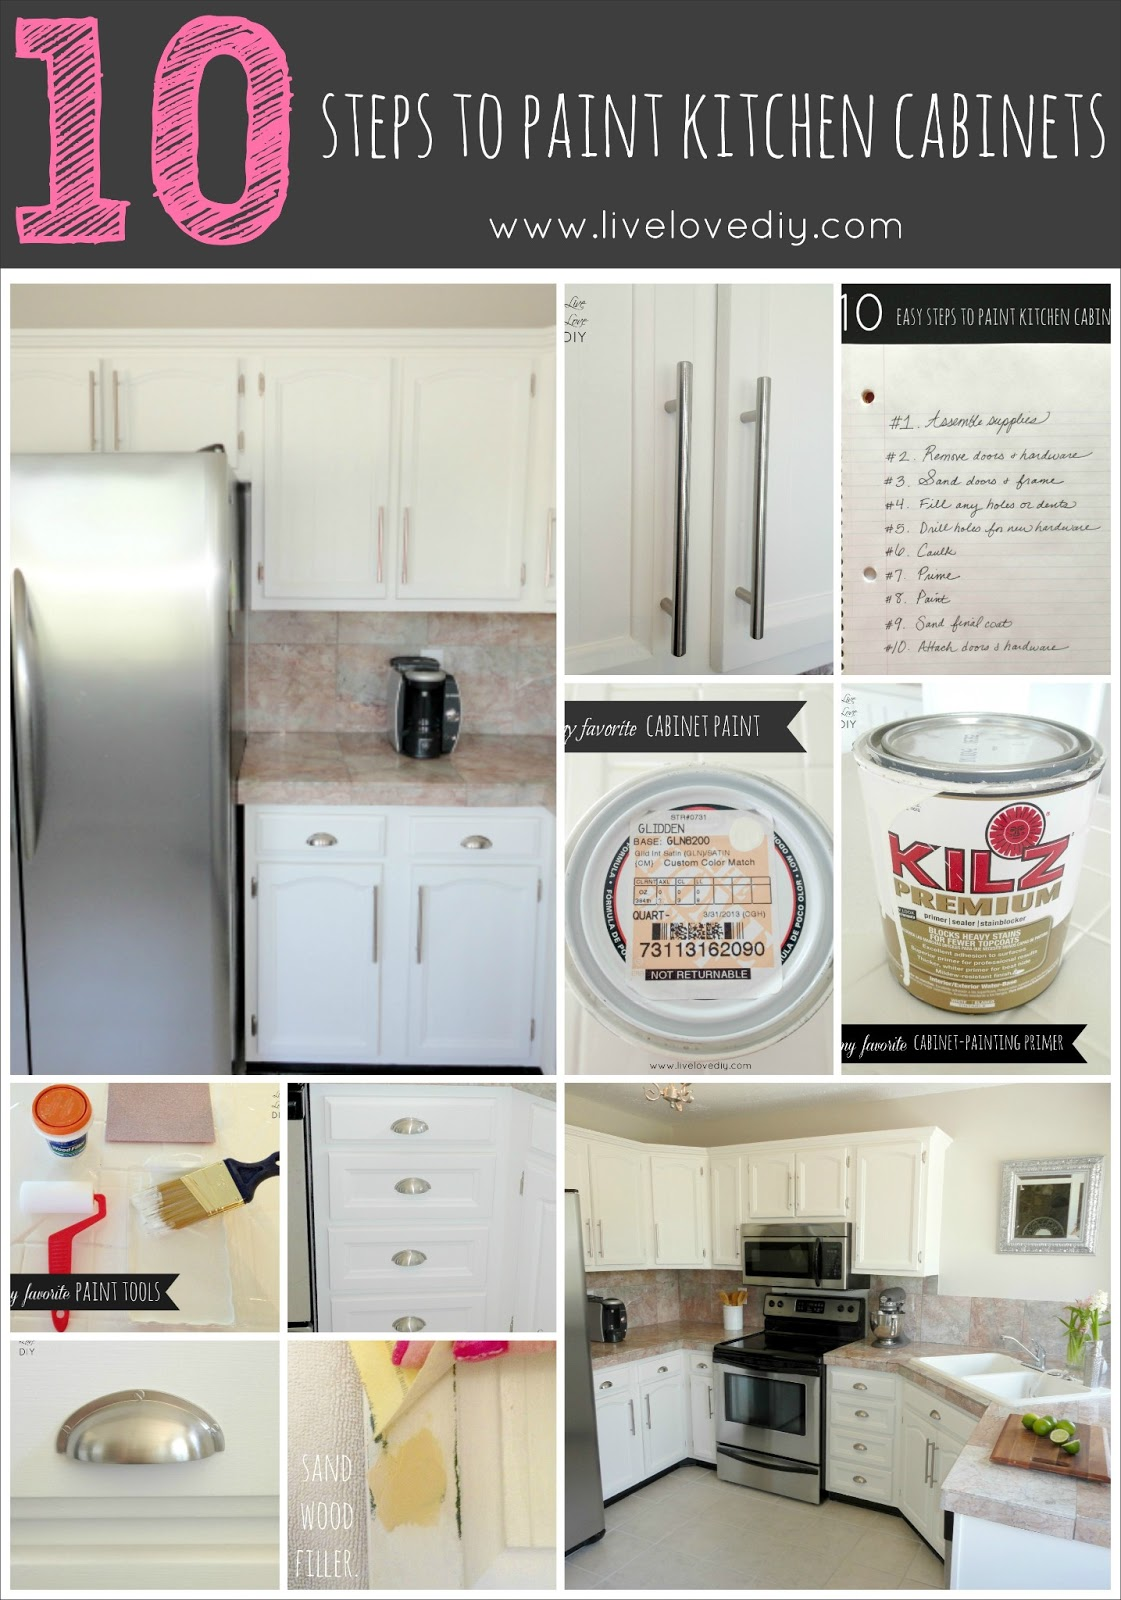 LiveLoveDIY How To Paint Kitchen Cabinets In Easy Steps - What's the best paint to use for kitchen cabinets